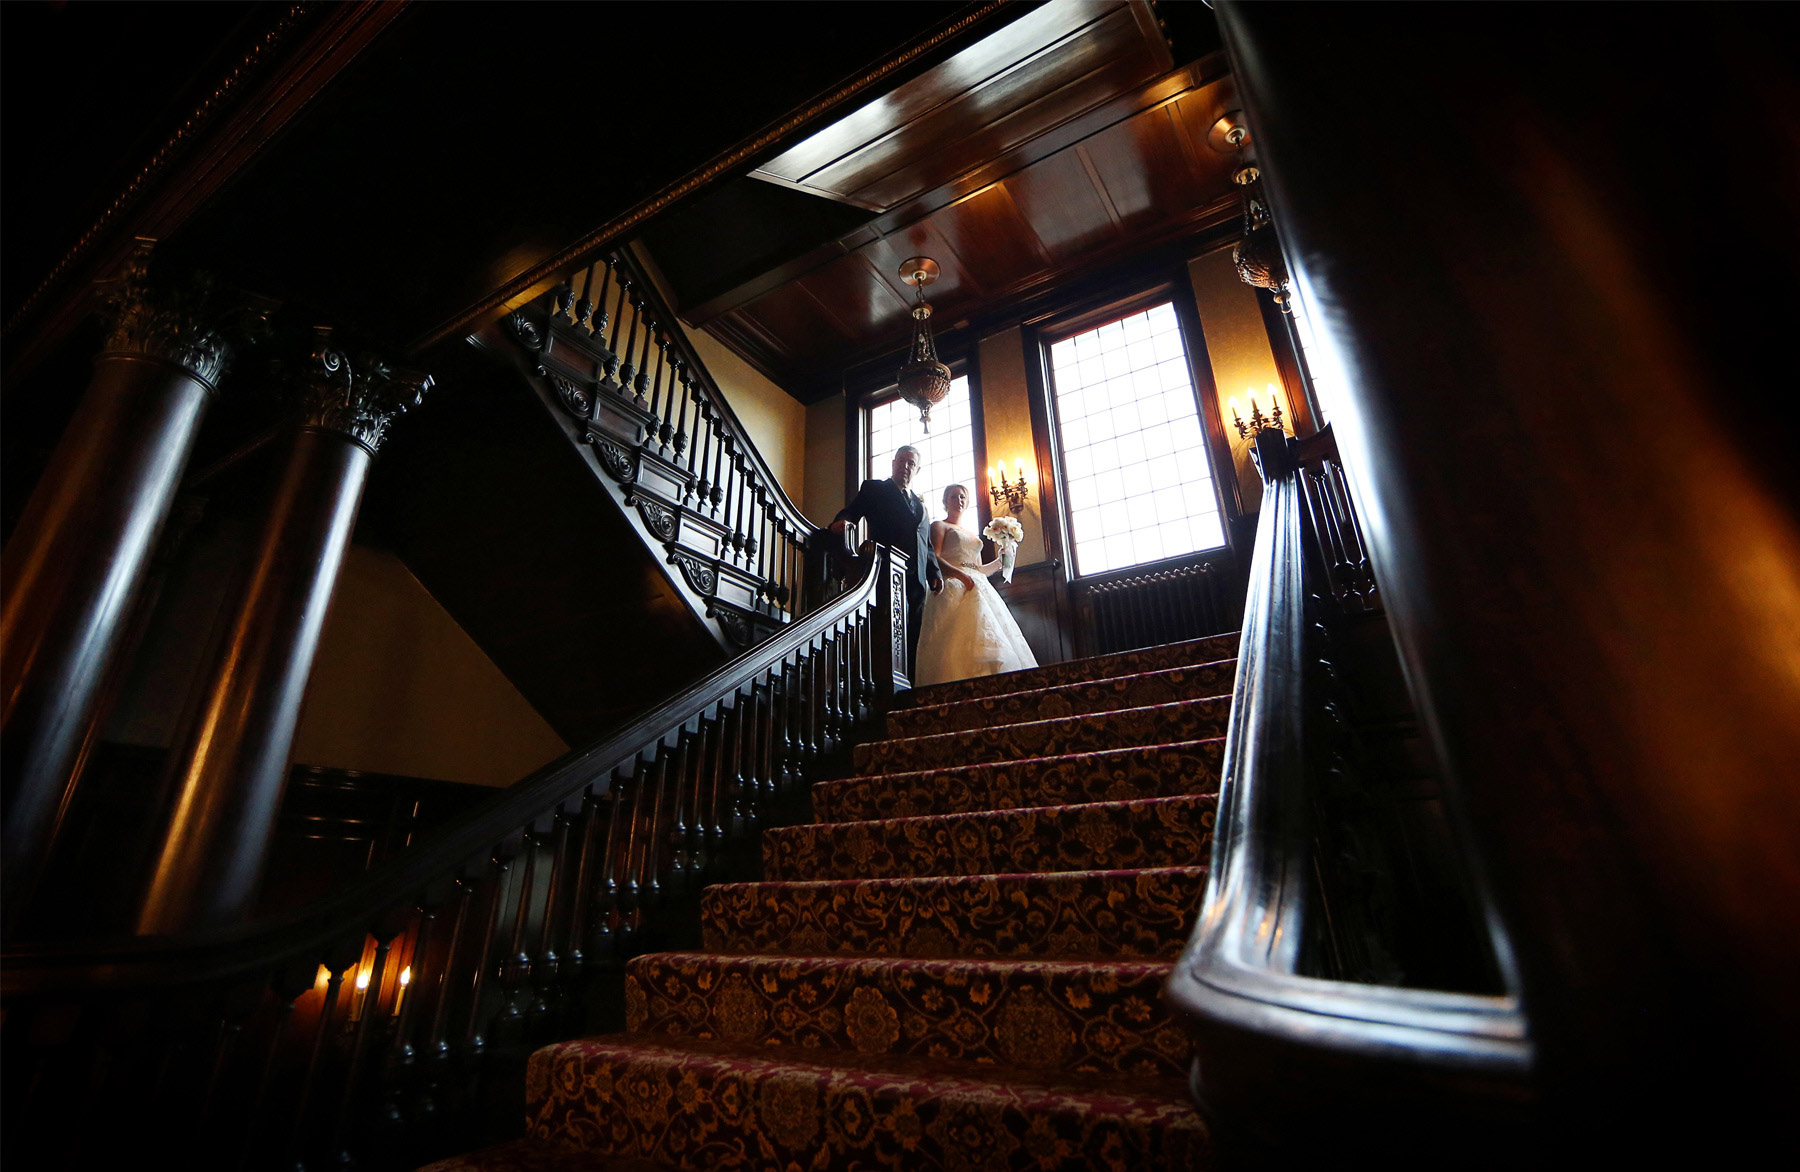 12-Minneapolis-Minnesota-Wedding-Photography-by-Vick-Photography-Semple-Mansion-Ceremony-Grand-Staircase-Caitlin-&-Derrick.jpg